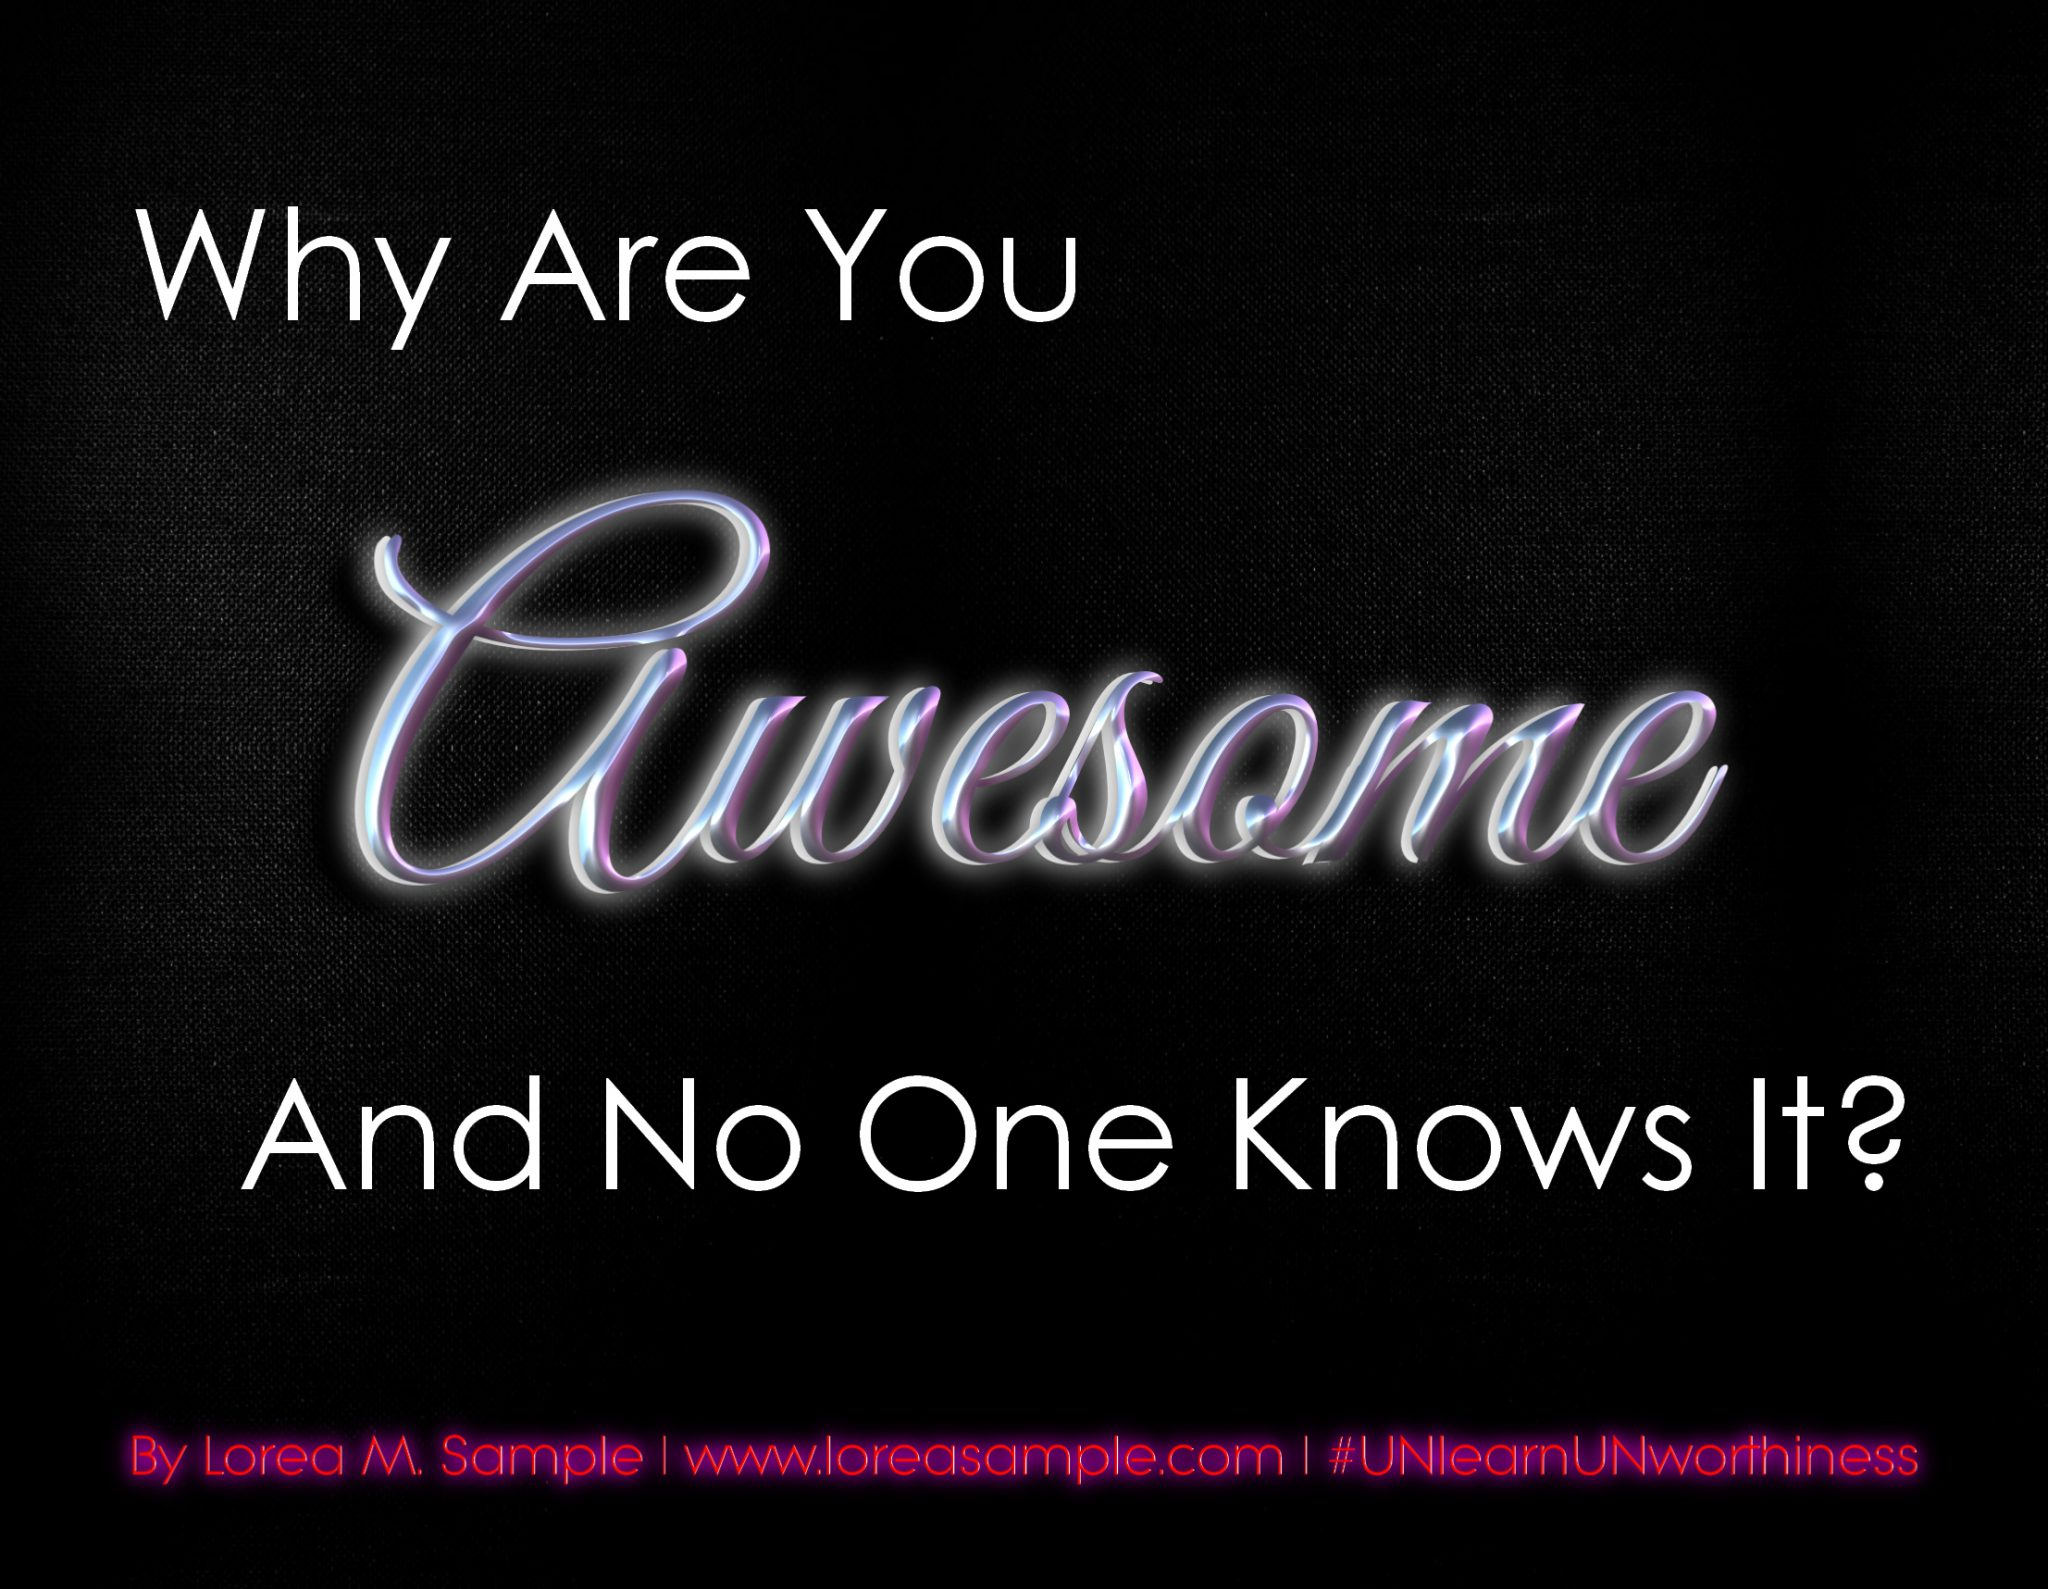 Why Are You Awesome And No One Knows It?